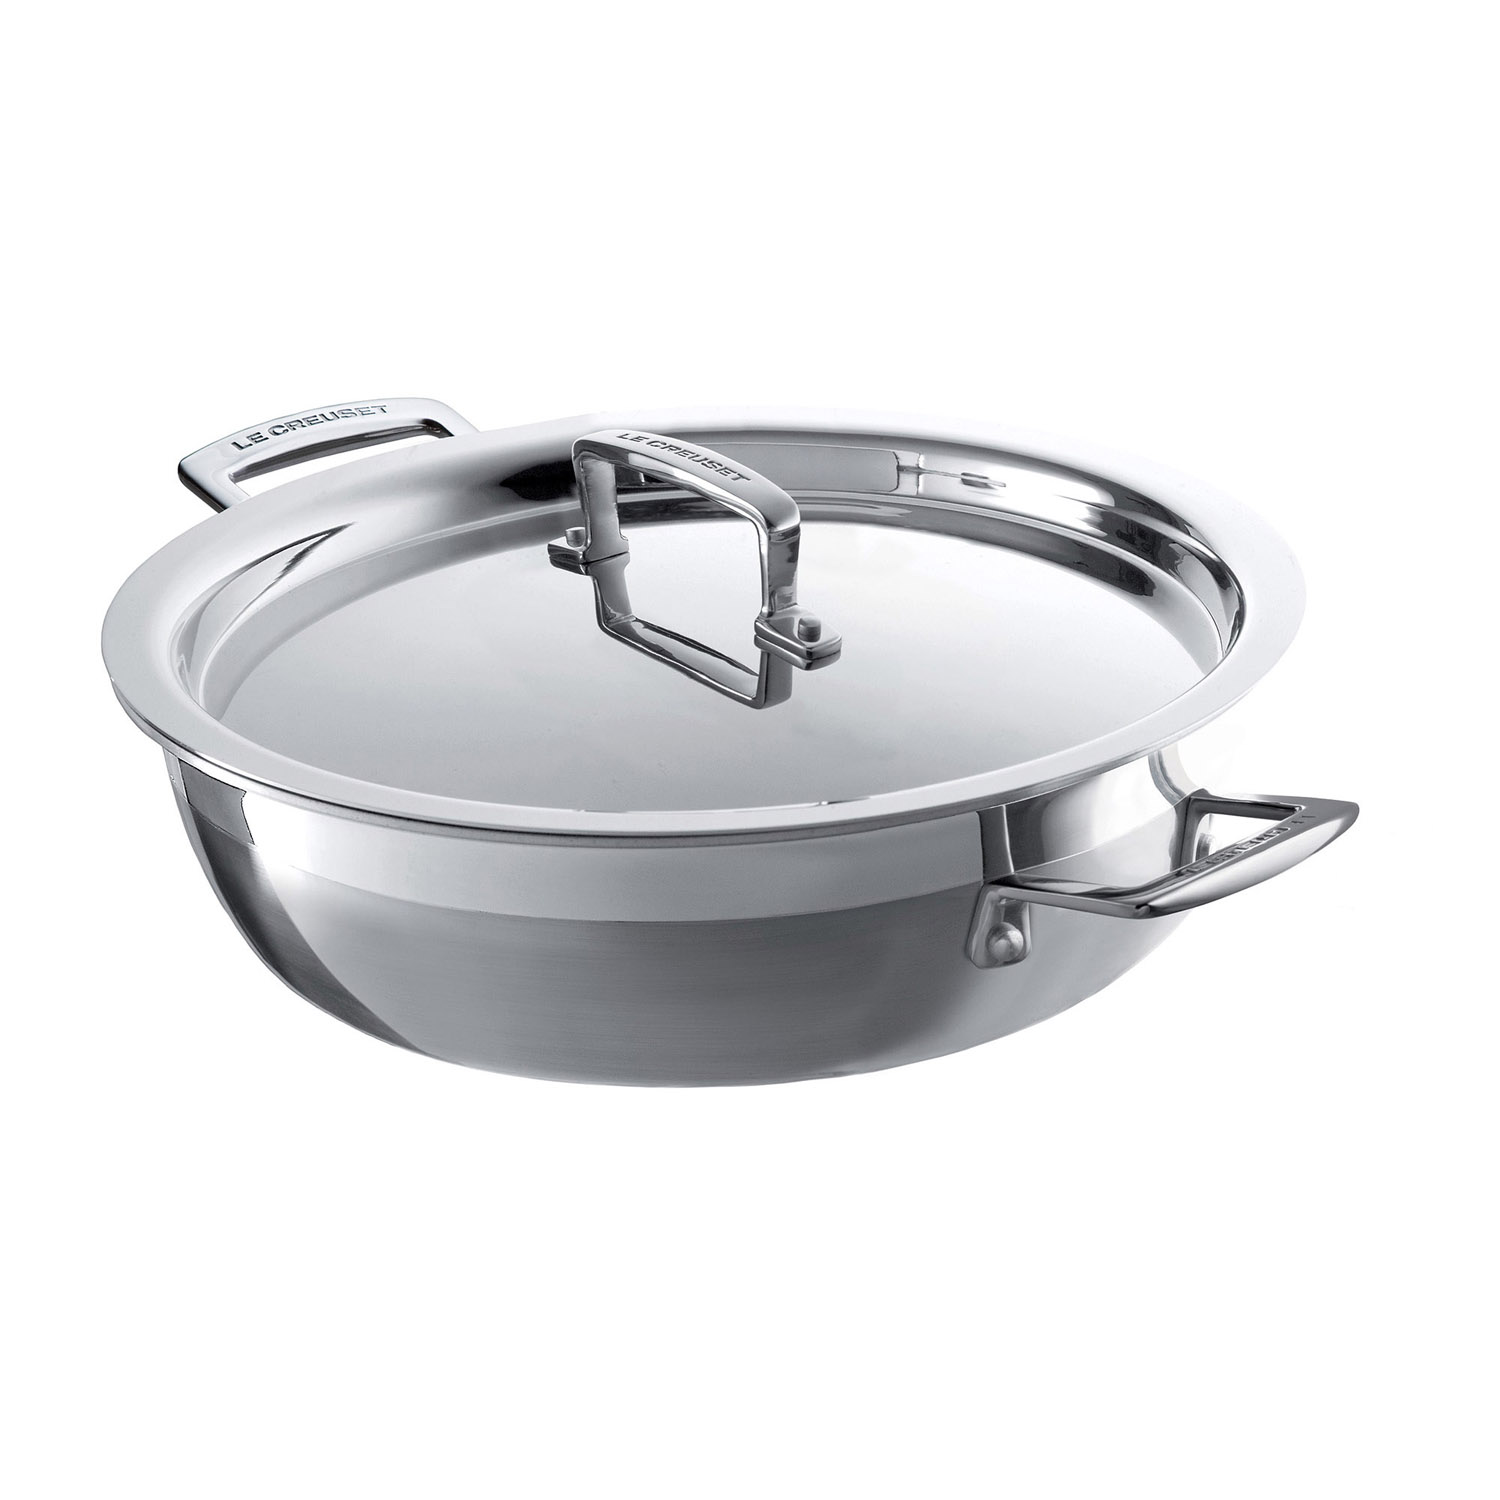 Image of Le Creuset 3-Ply shallow Casserole with Lid, 24cm, Stainless Steel